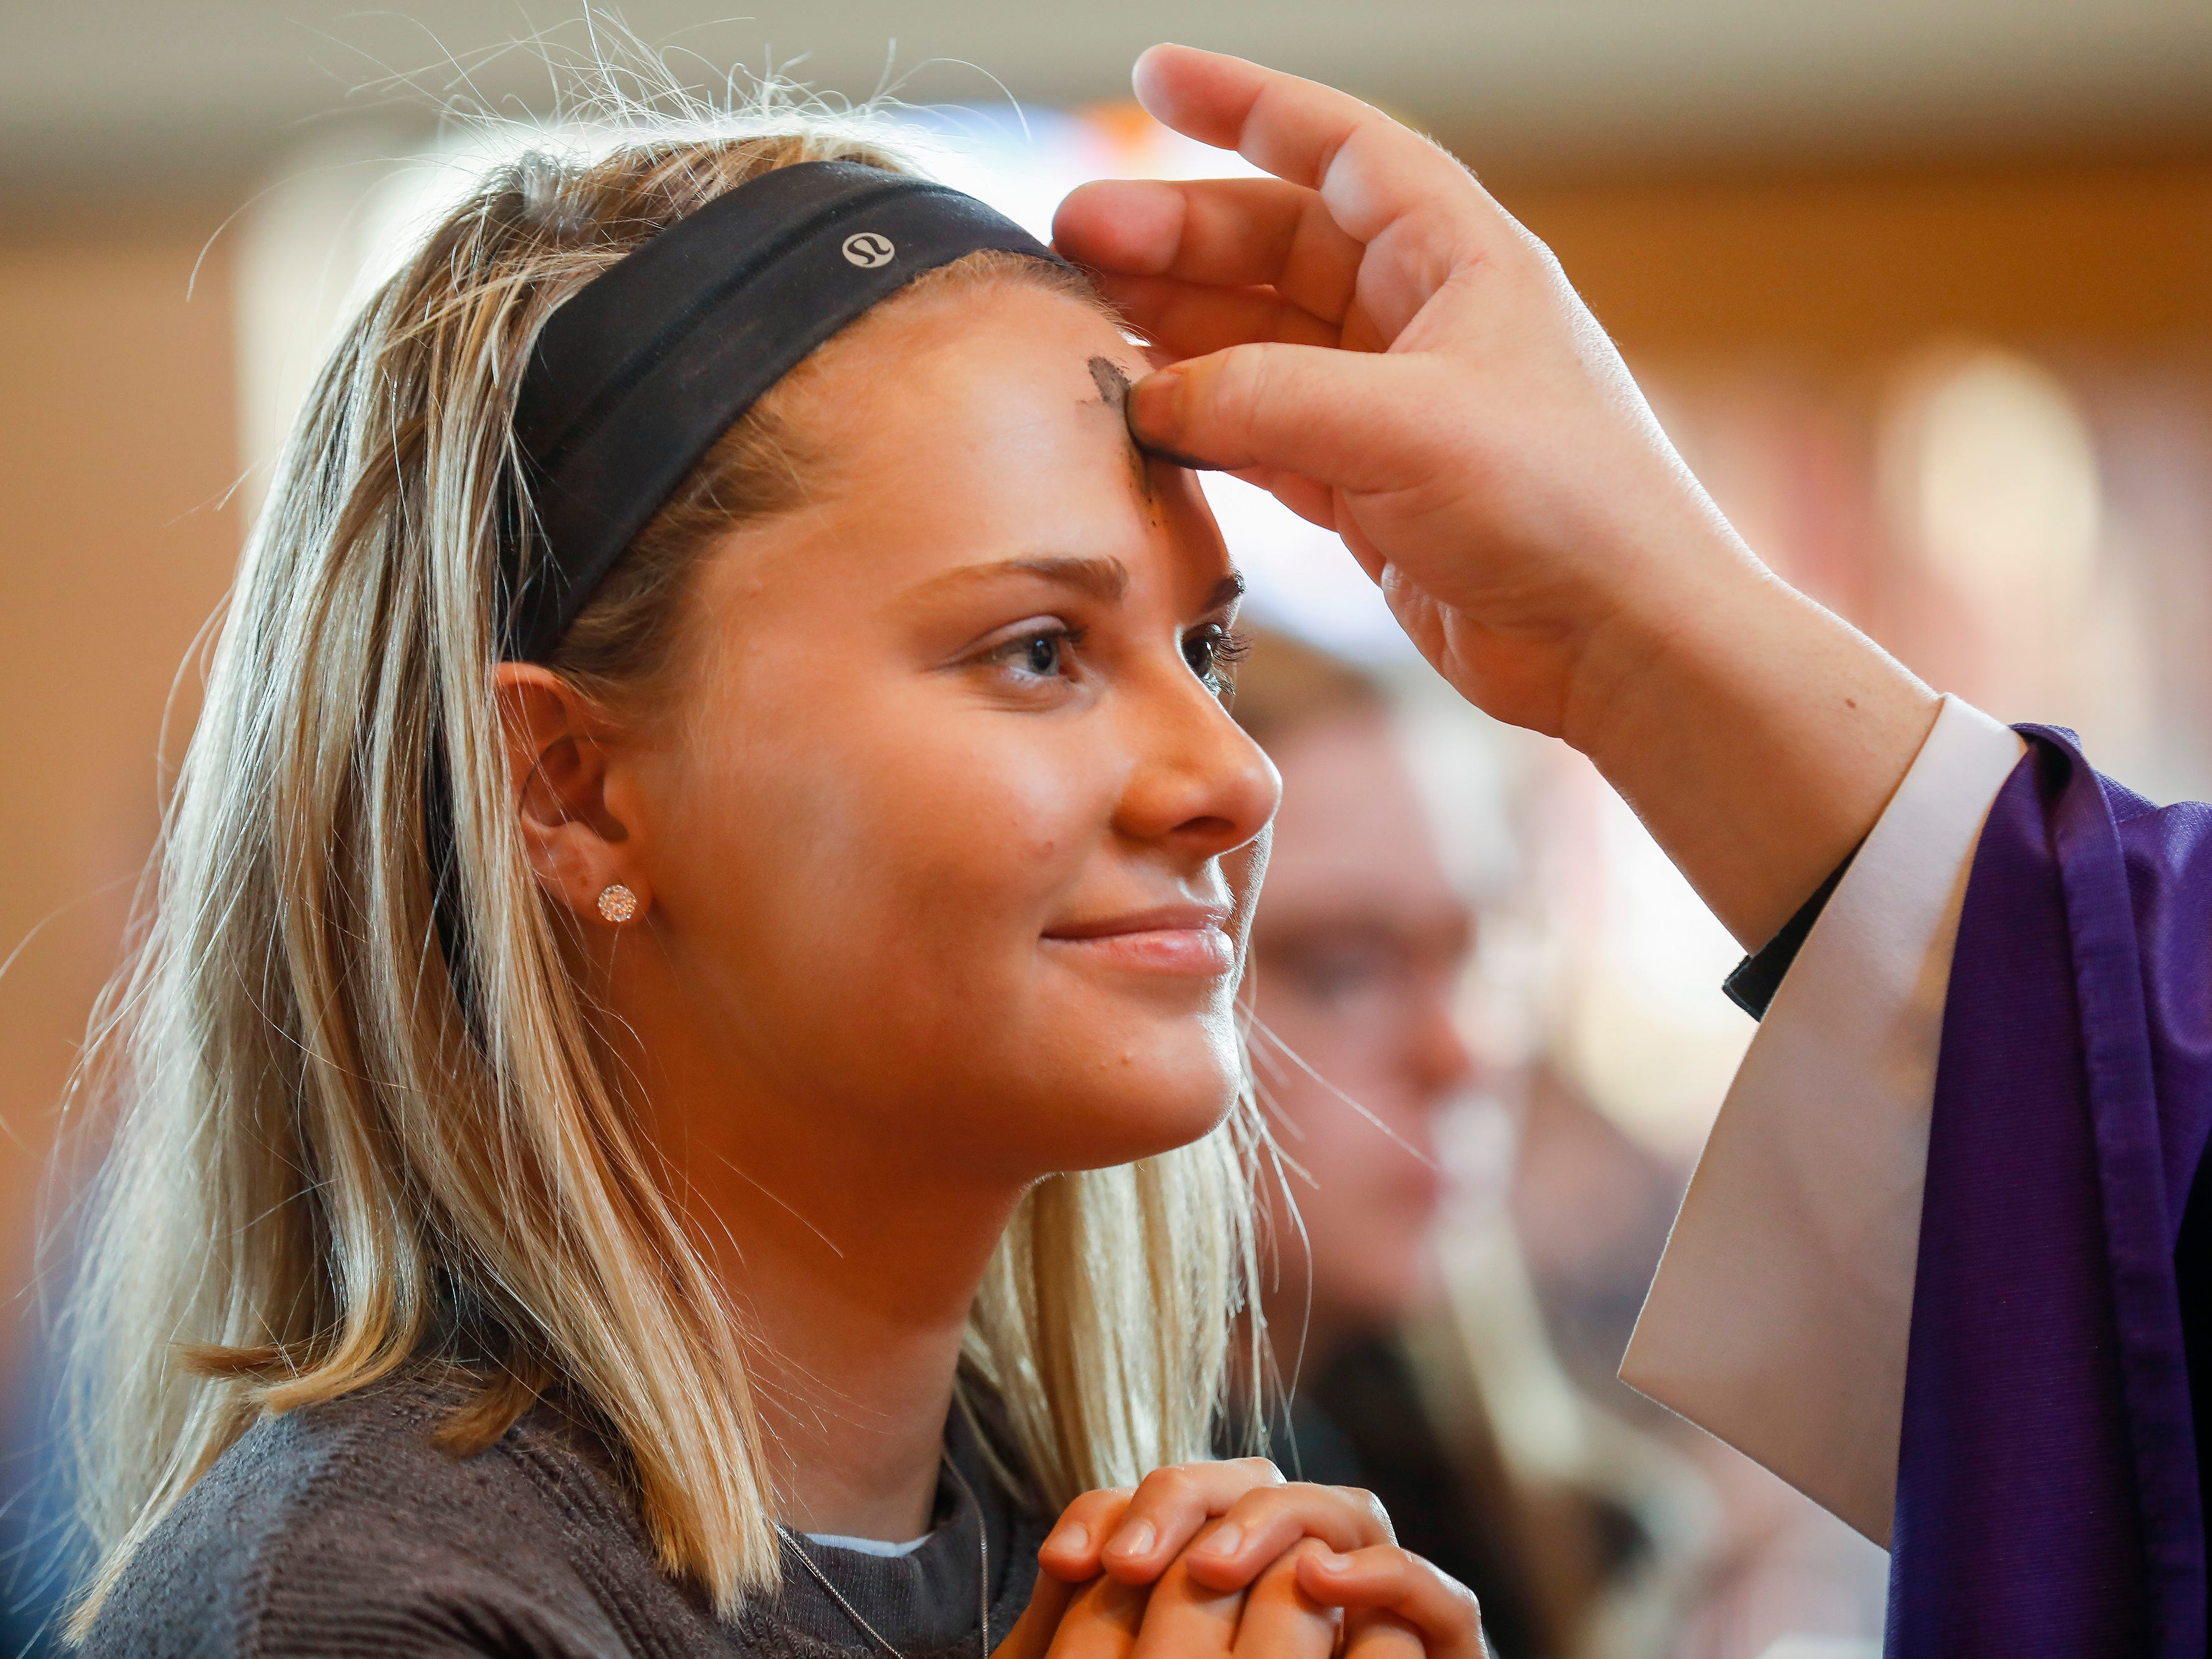 Jenna Pleimann, a student at Missouri State University, has ashes applied to her forehead during the Ash Wednesday Mass at the Missouri State University Catholic Campus Ministry on Wednesday, March 6, 2019.